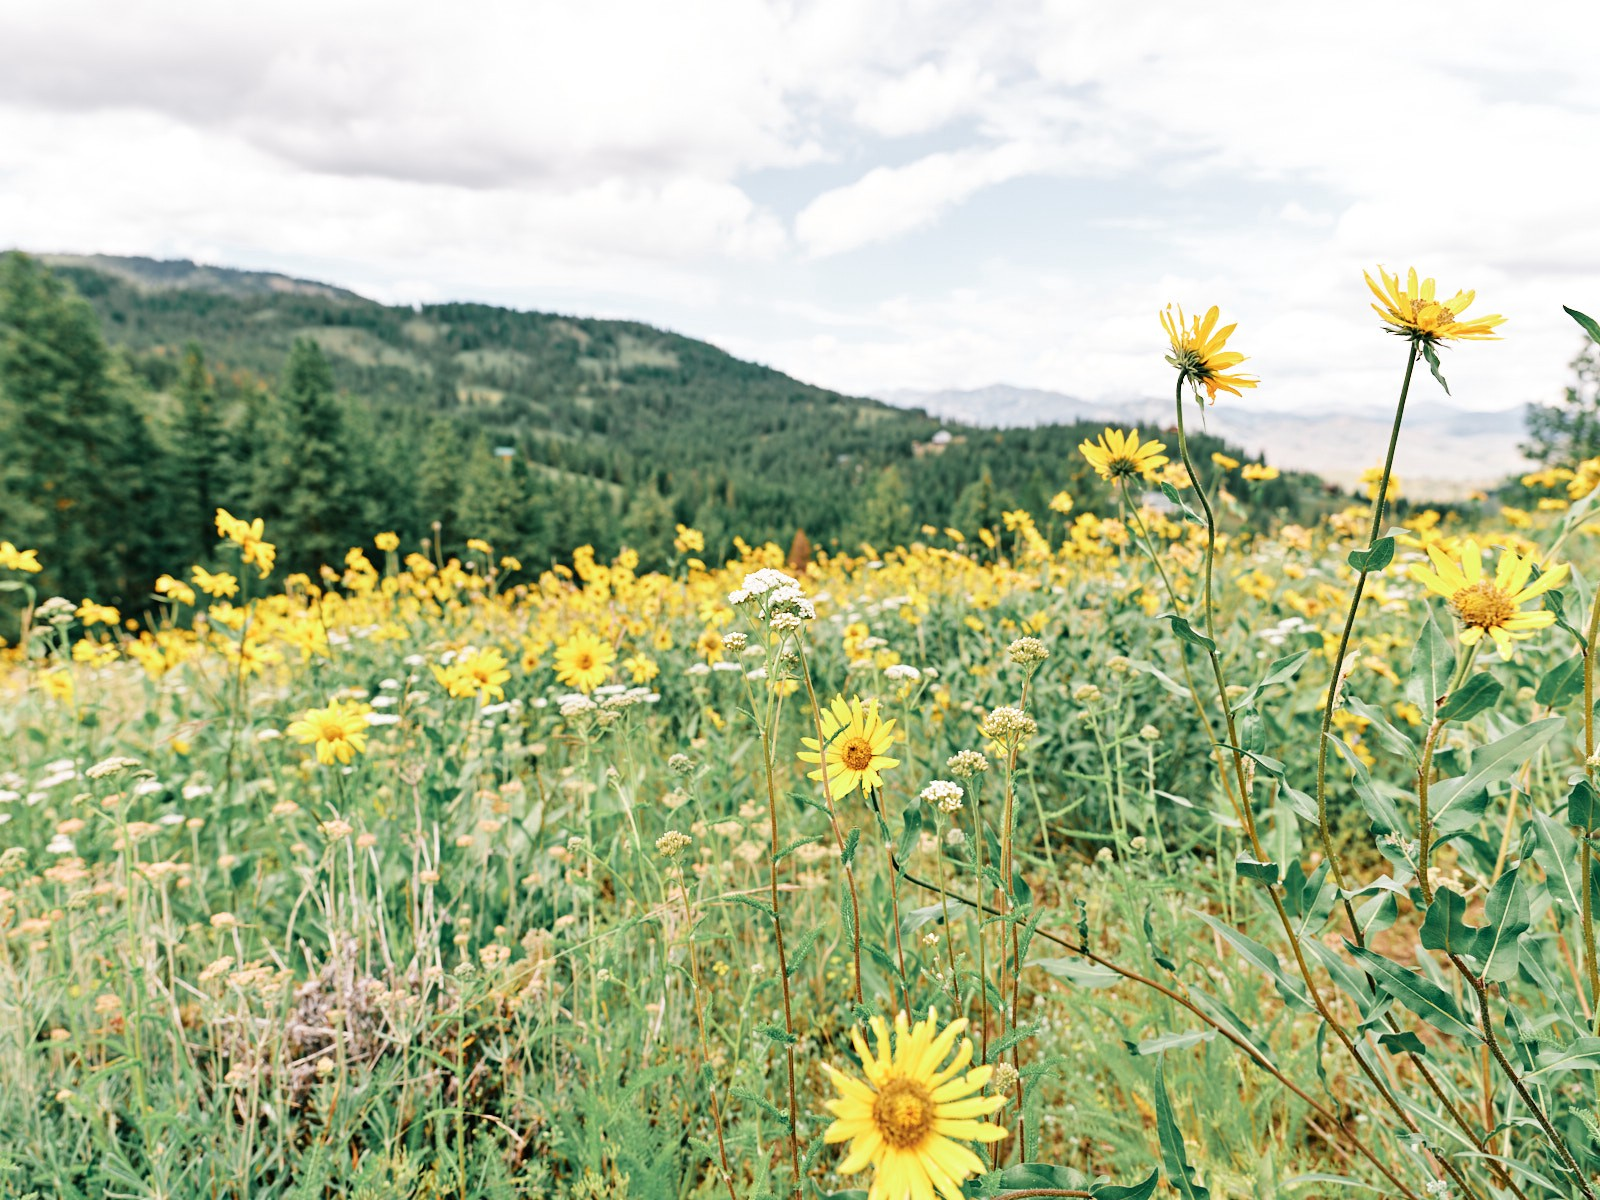 Methow Valley Spring 2020 just as the pandemic gain hold in the Pacific Northwest.